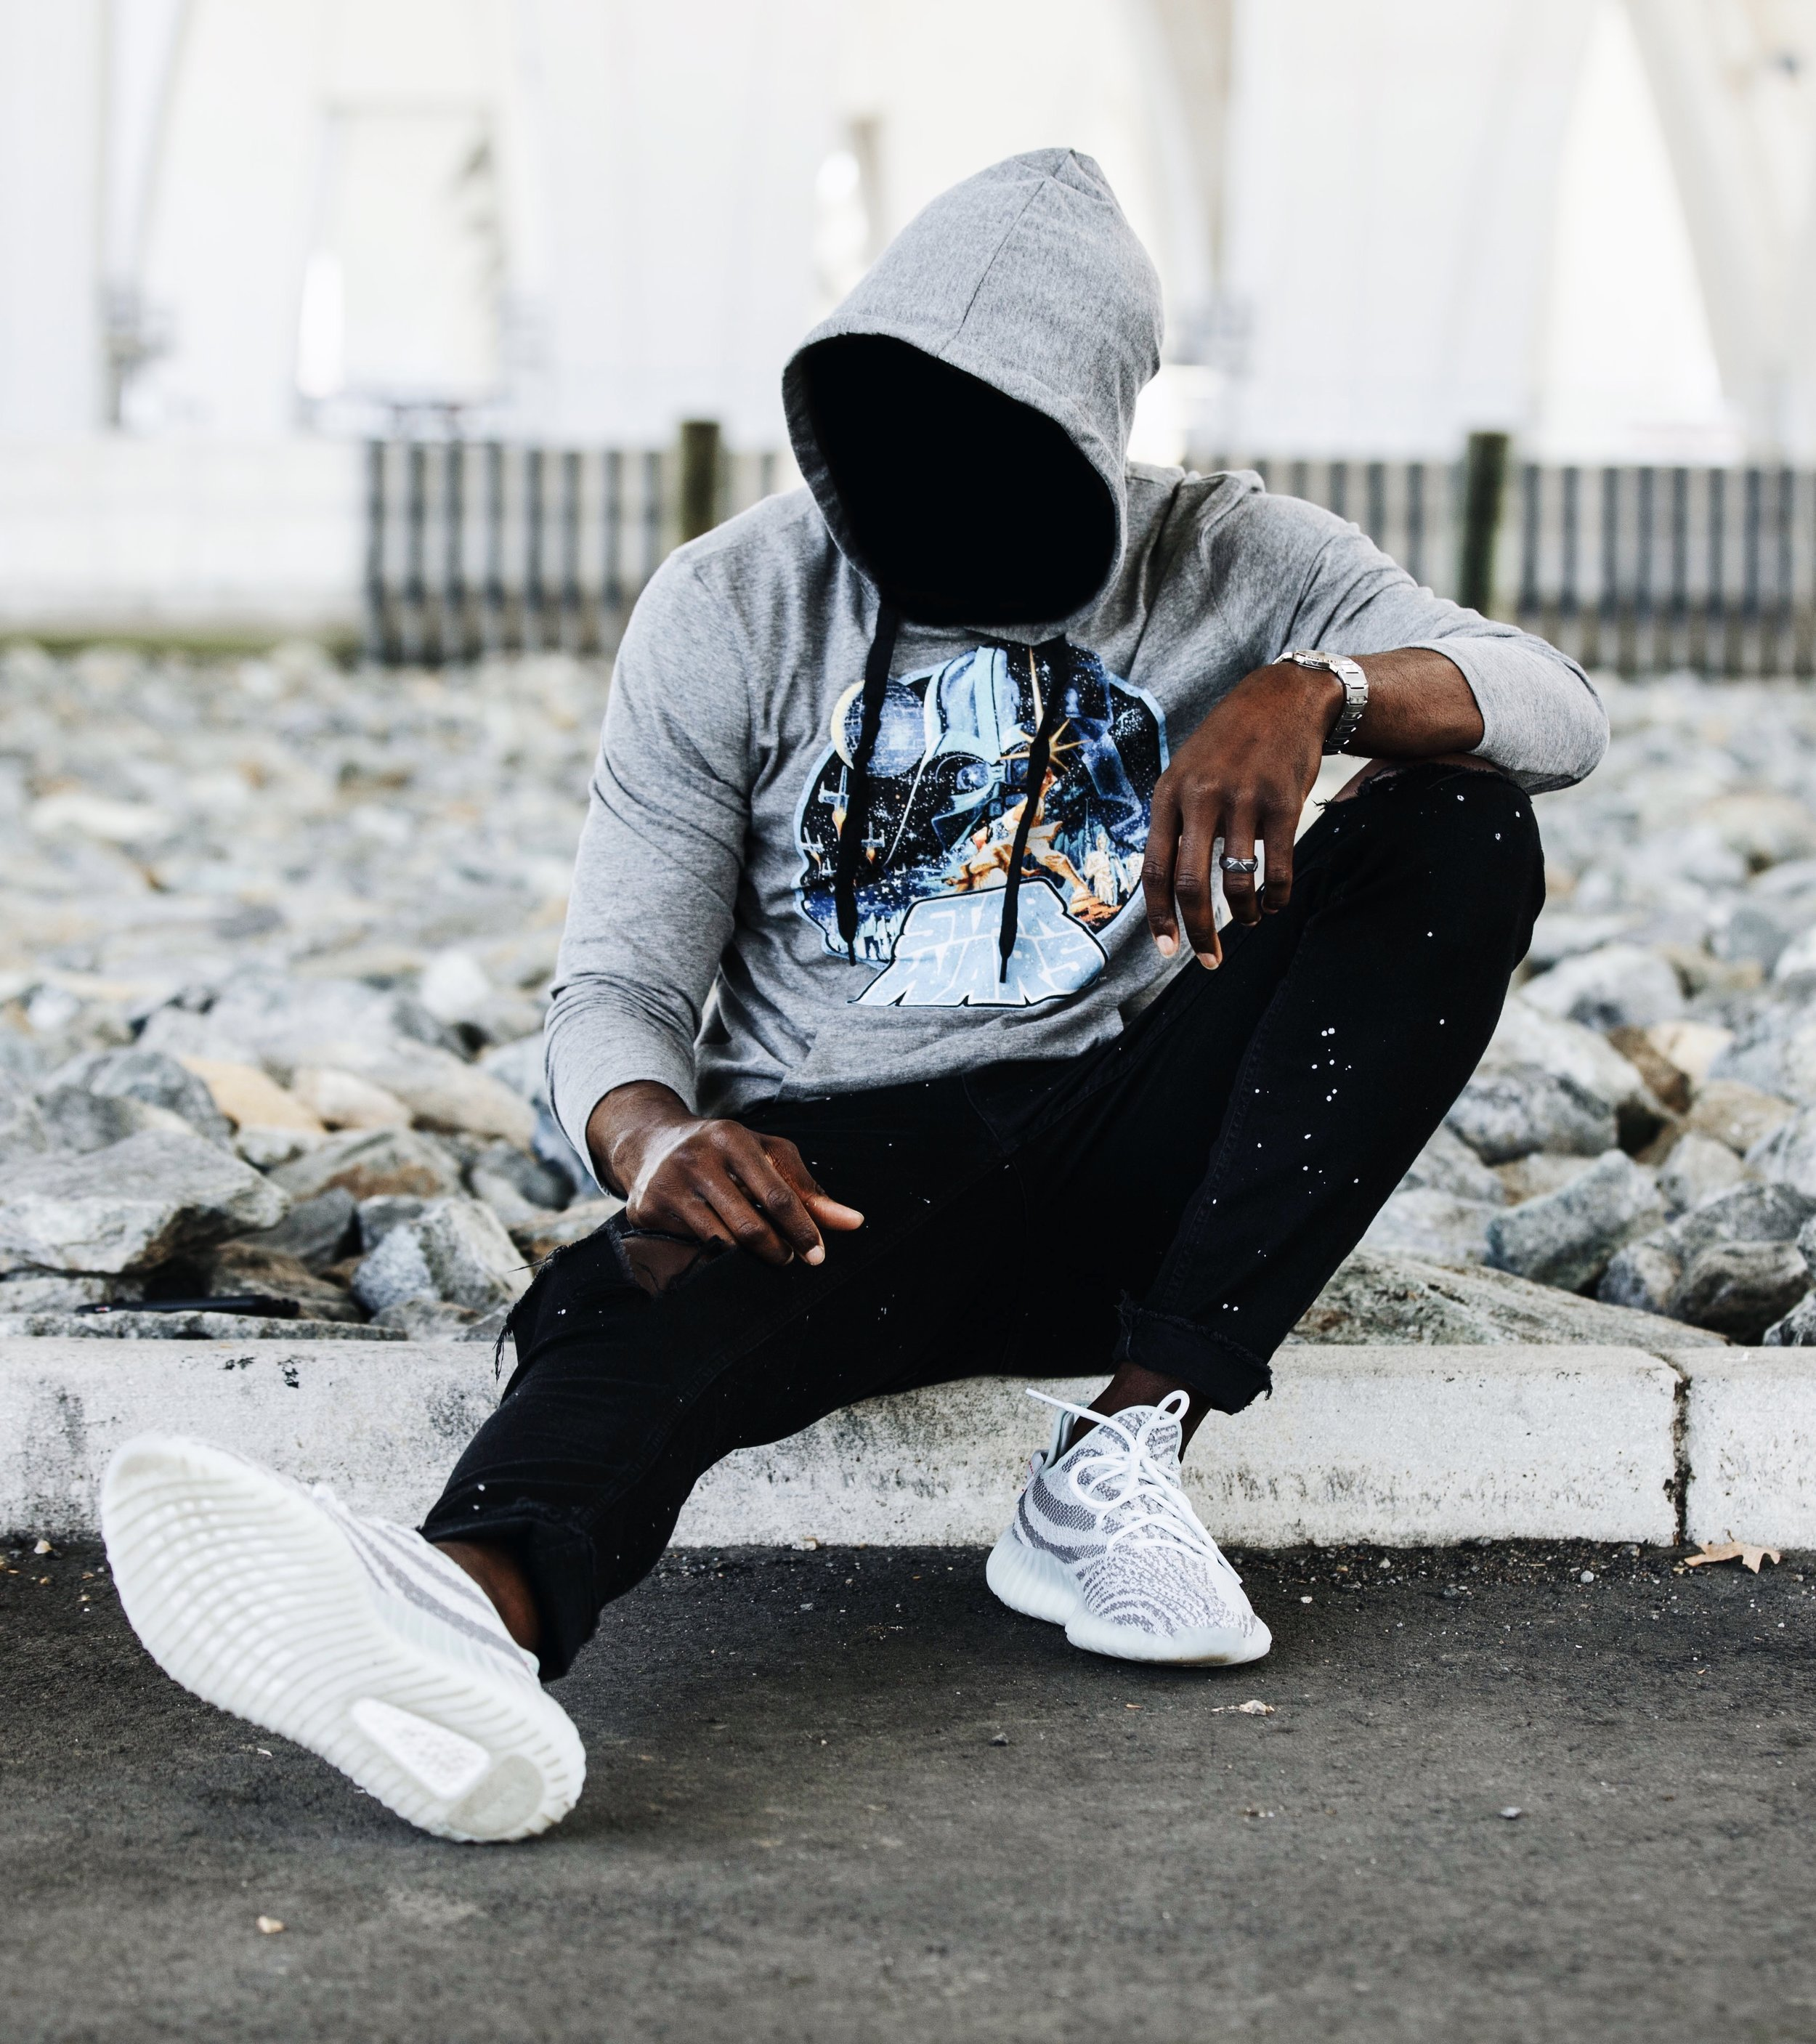 Brand influencer the creative gentleman wearing a grey hoody with Star Wars written on it, black ripped denim with white paint spatter, and Yezzy 350 Blue Tint sneakers.